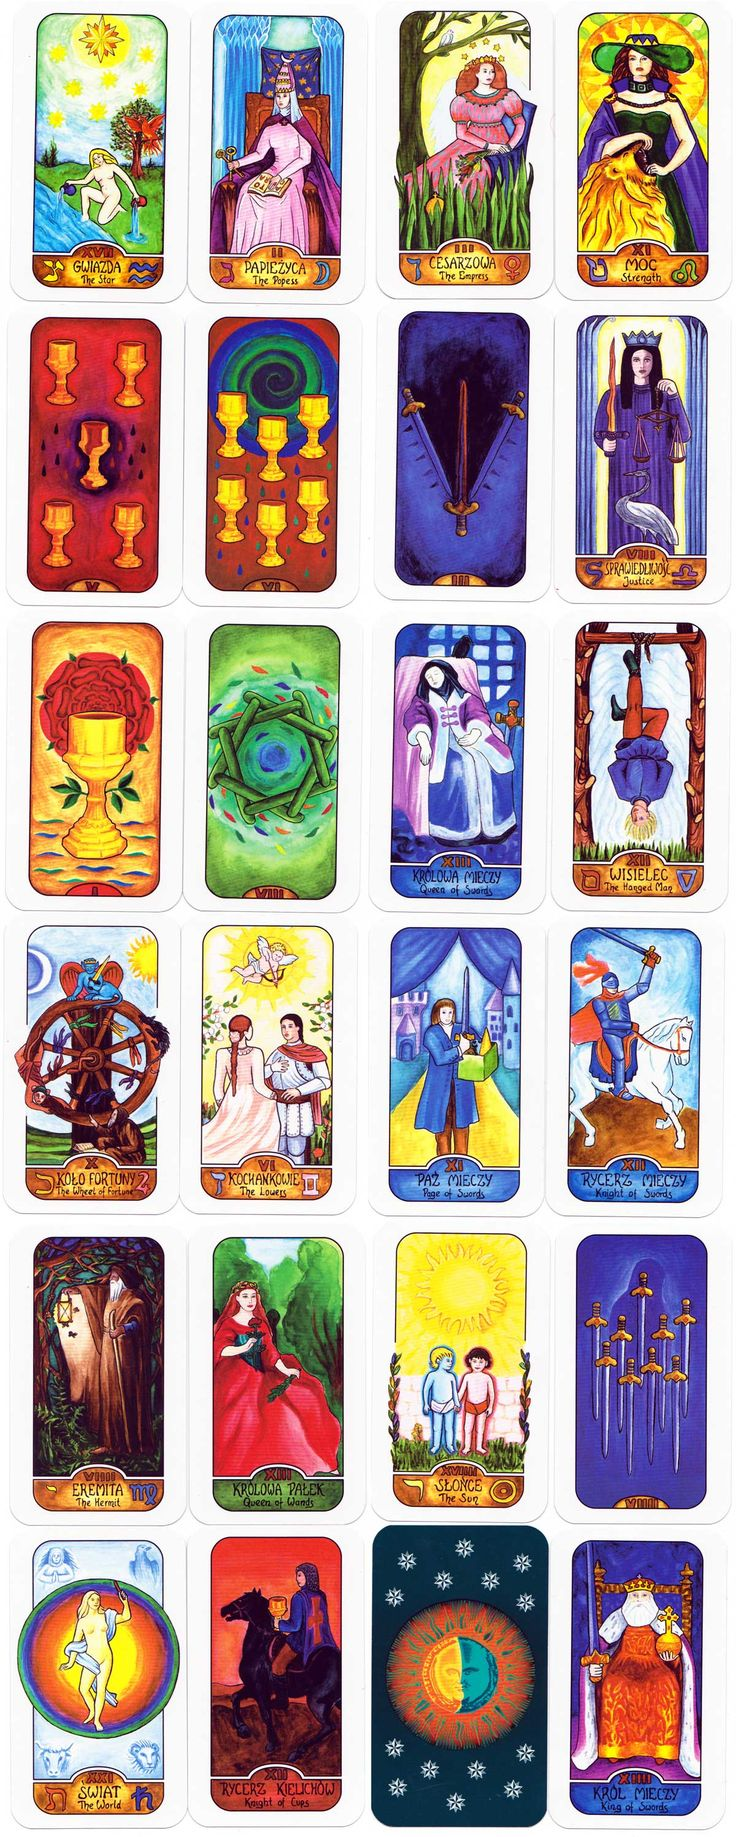 how many tarot cards are in a pack